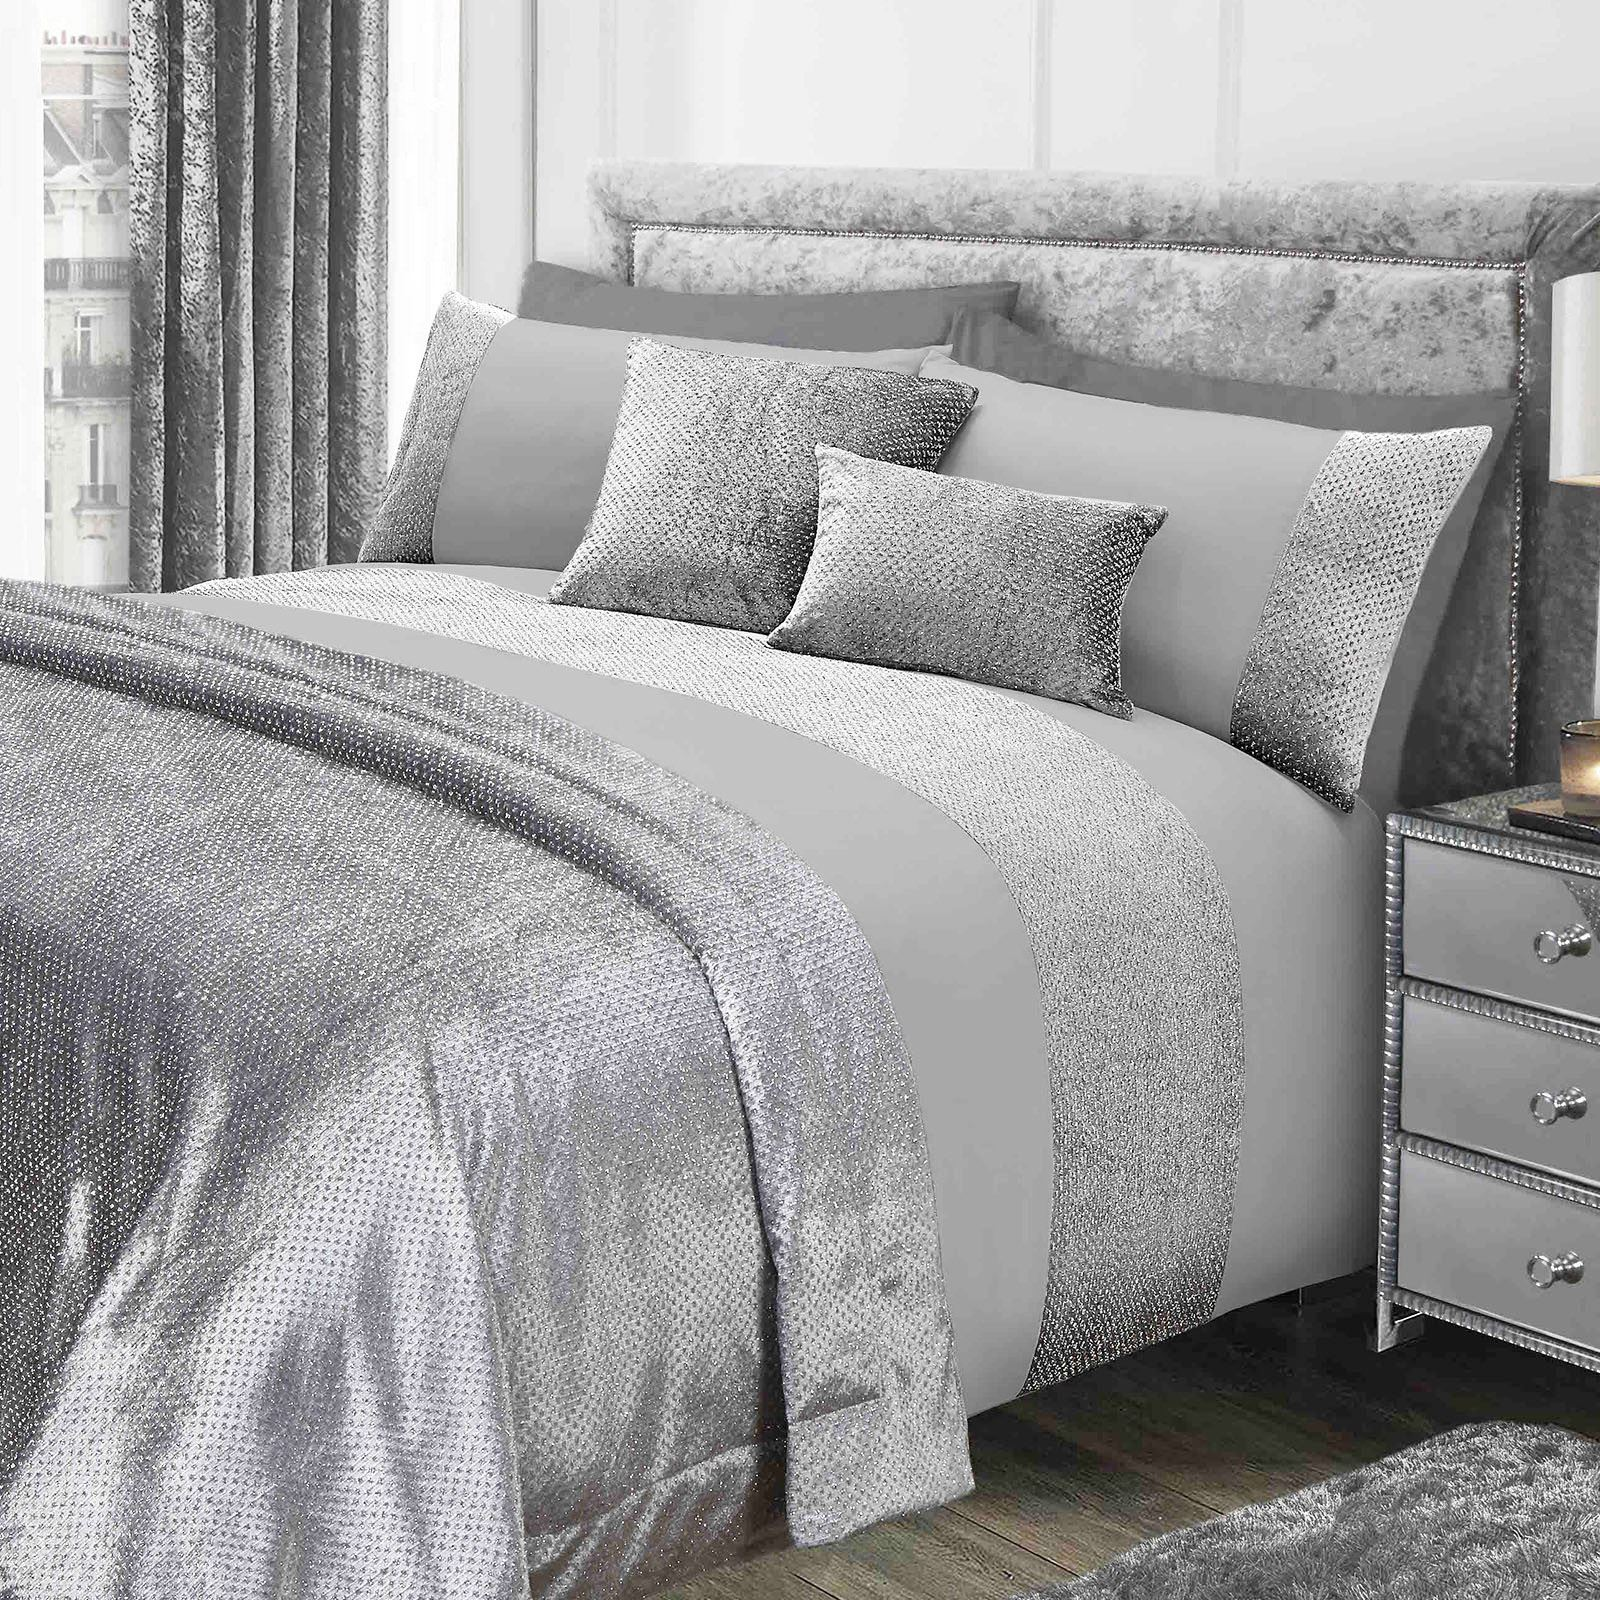 Sienna-Glitter-Duvet-Cover-with-Pillow-Case-Sparkle-Velvet-Bedding-Set-Grey-Pink thumbnail 14